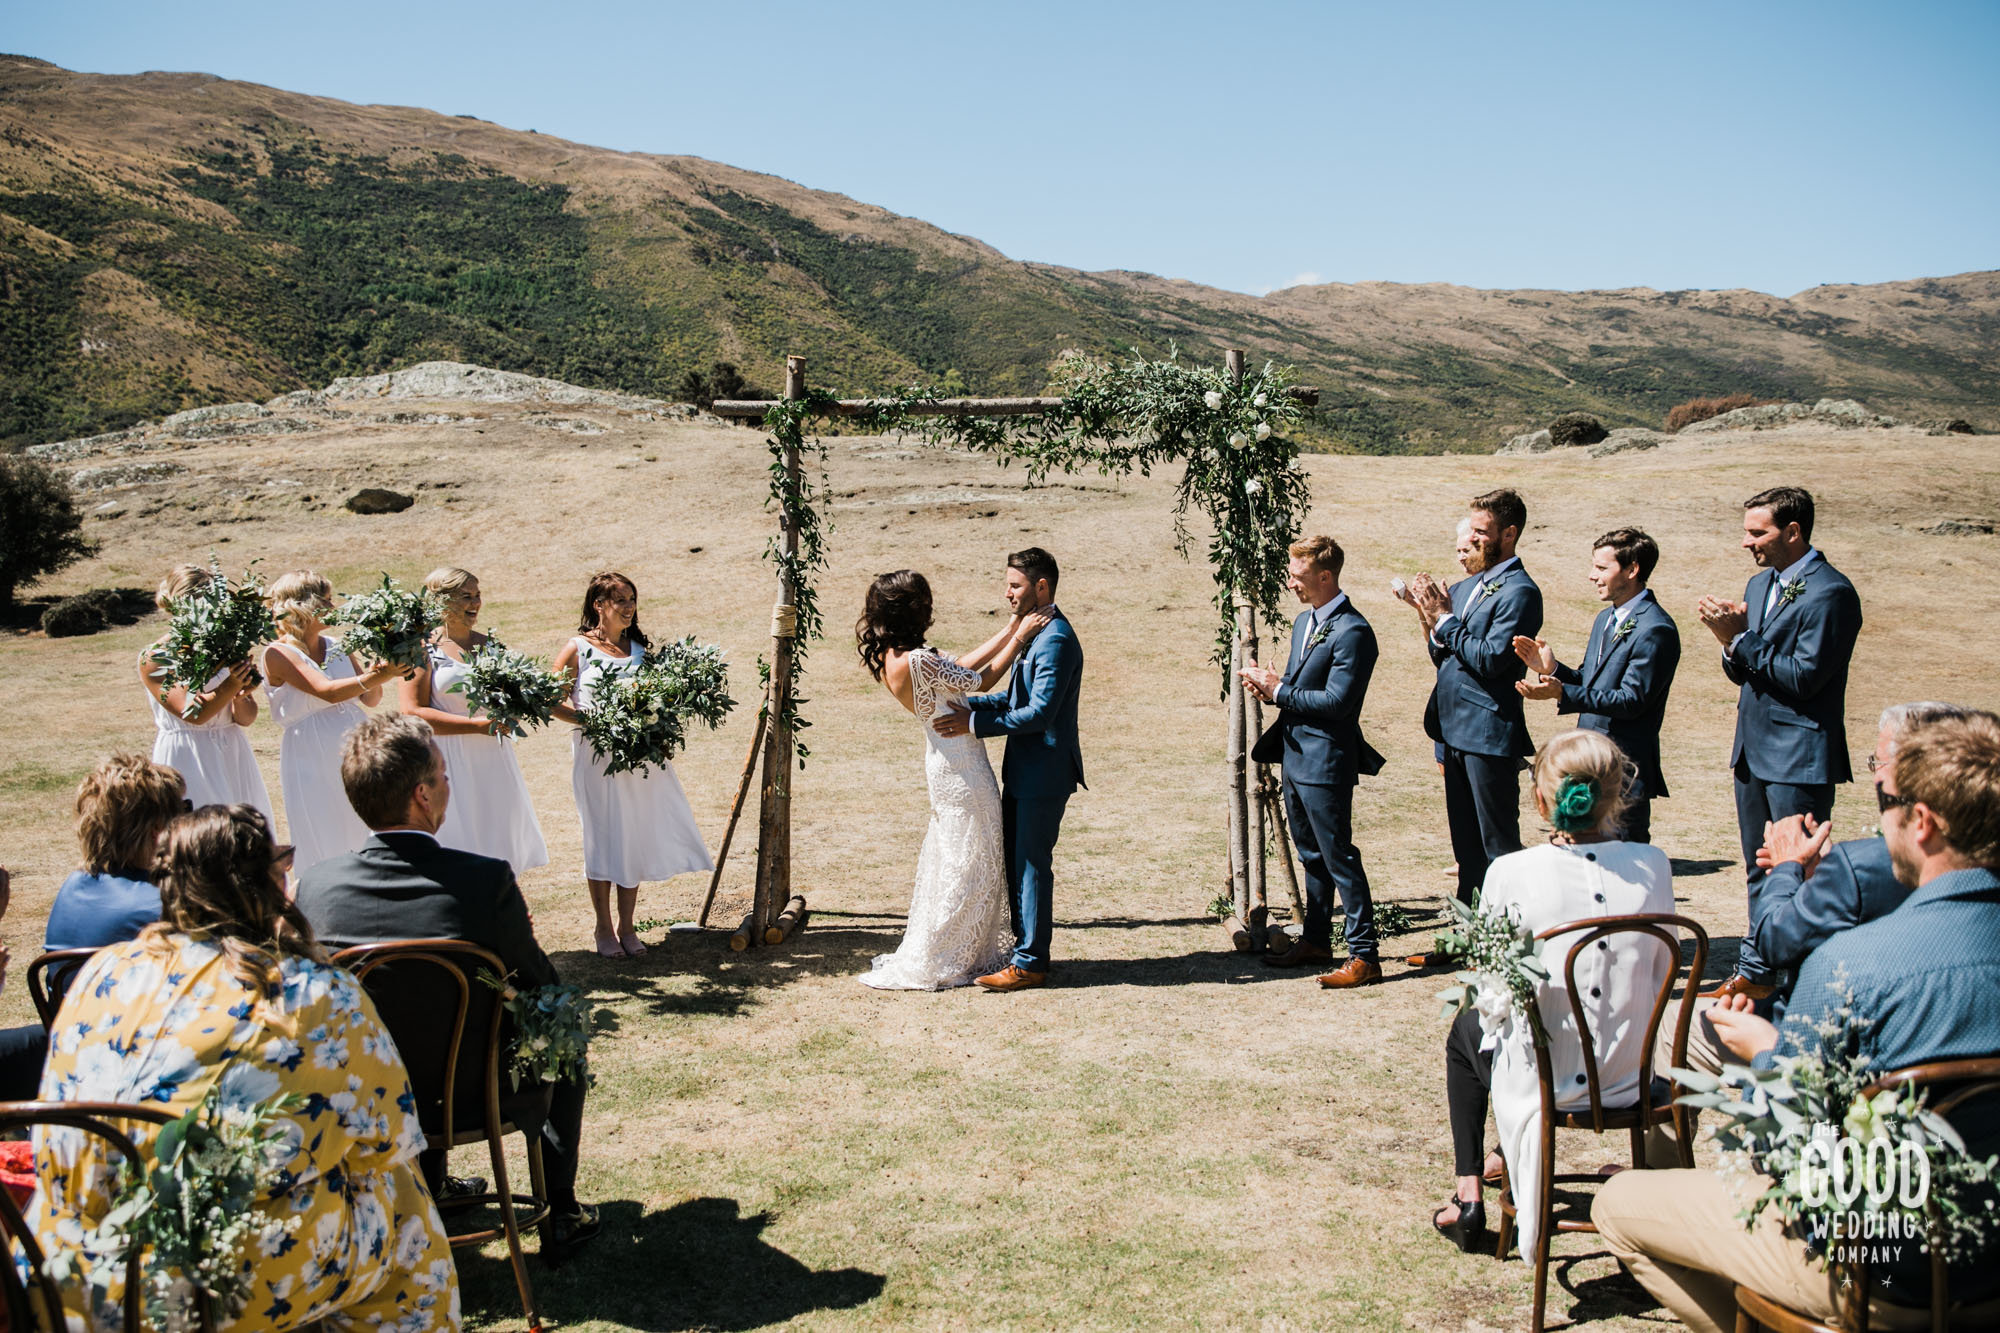 The-Good-Wedding-Company-LaurenLukas-Peregrine-Winery-Wanaka-Photographer-203.jpg